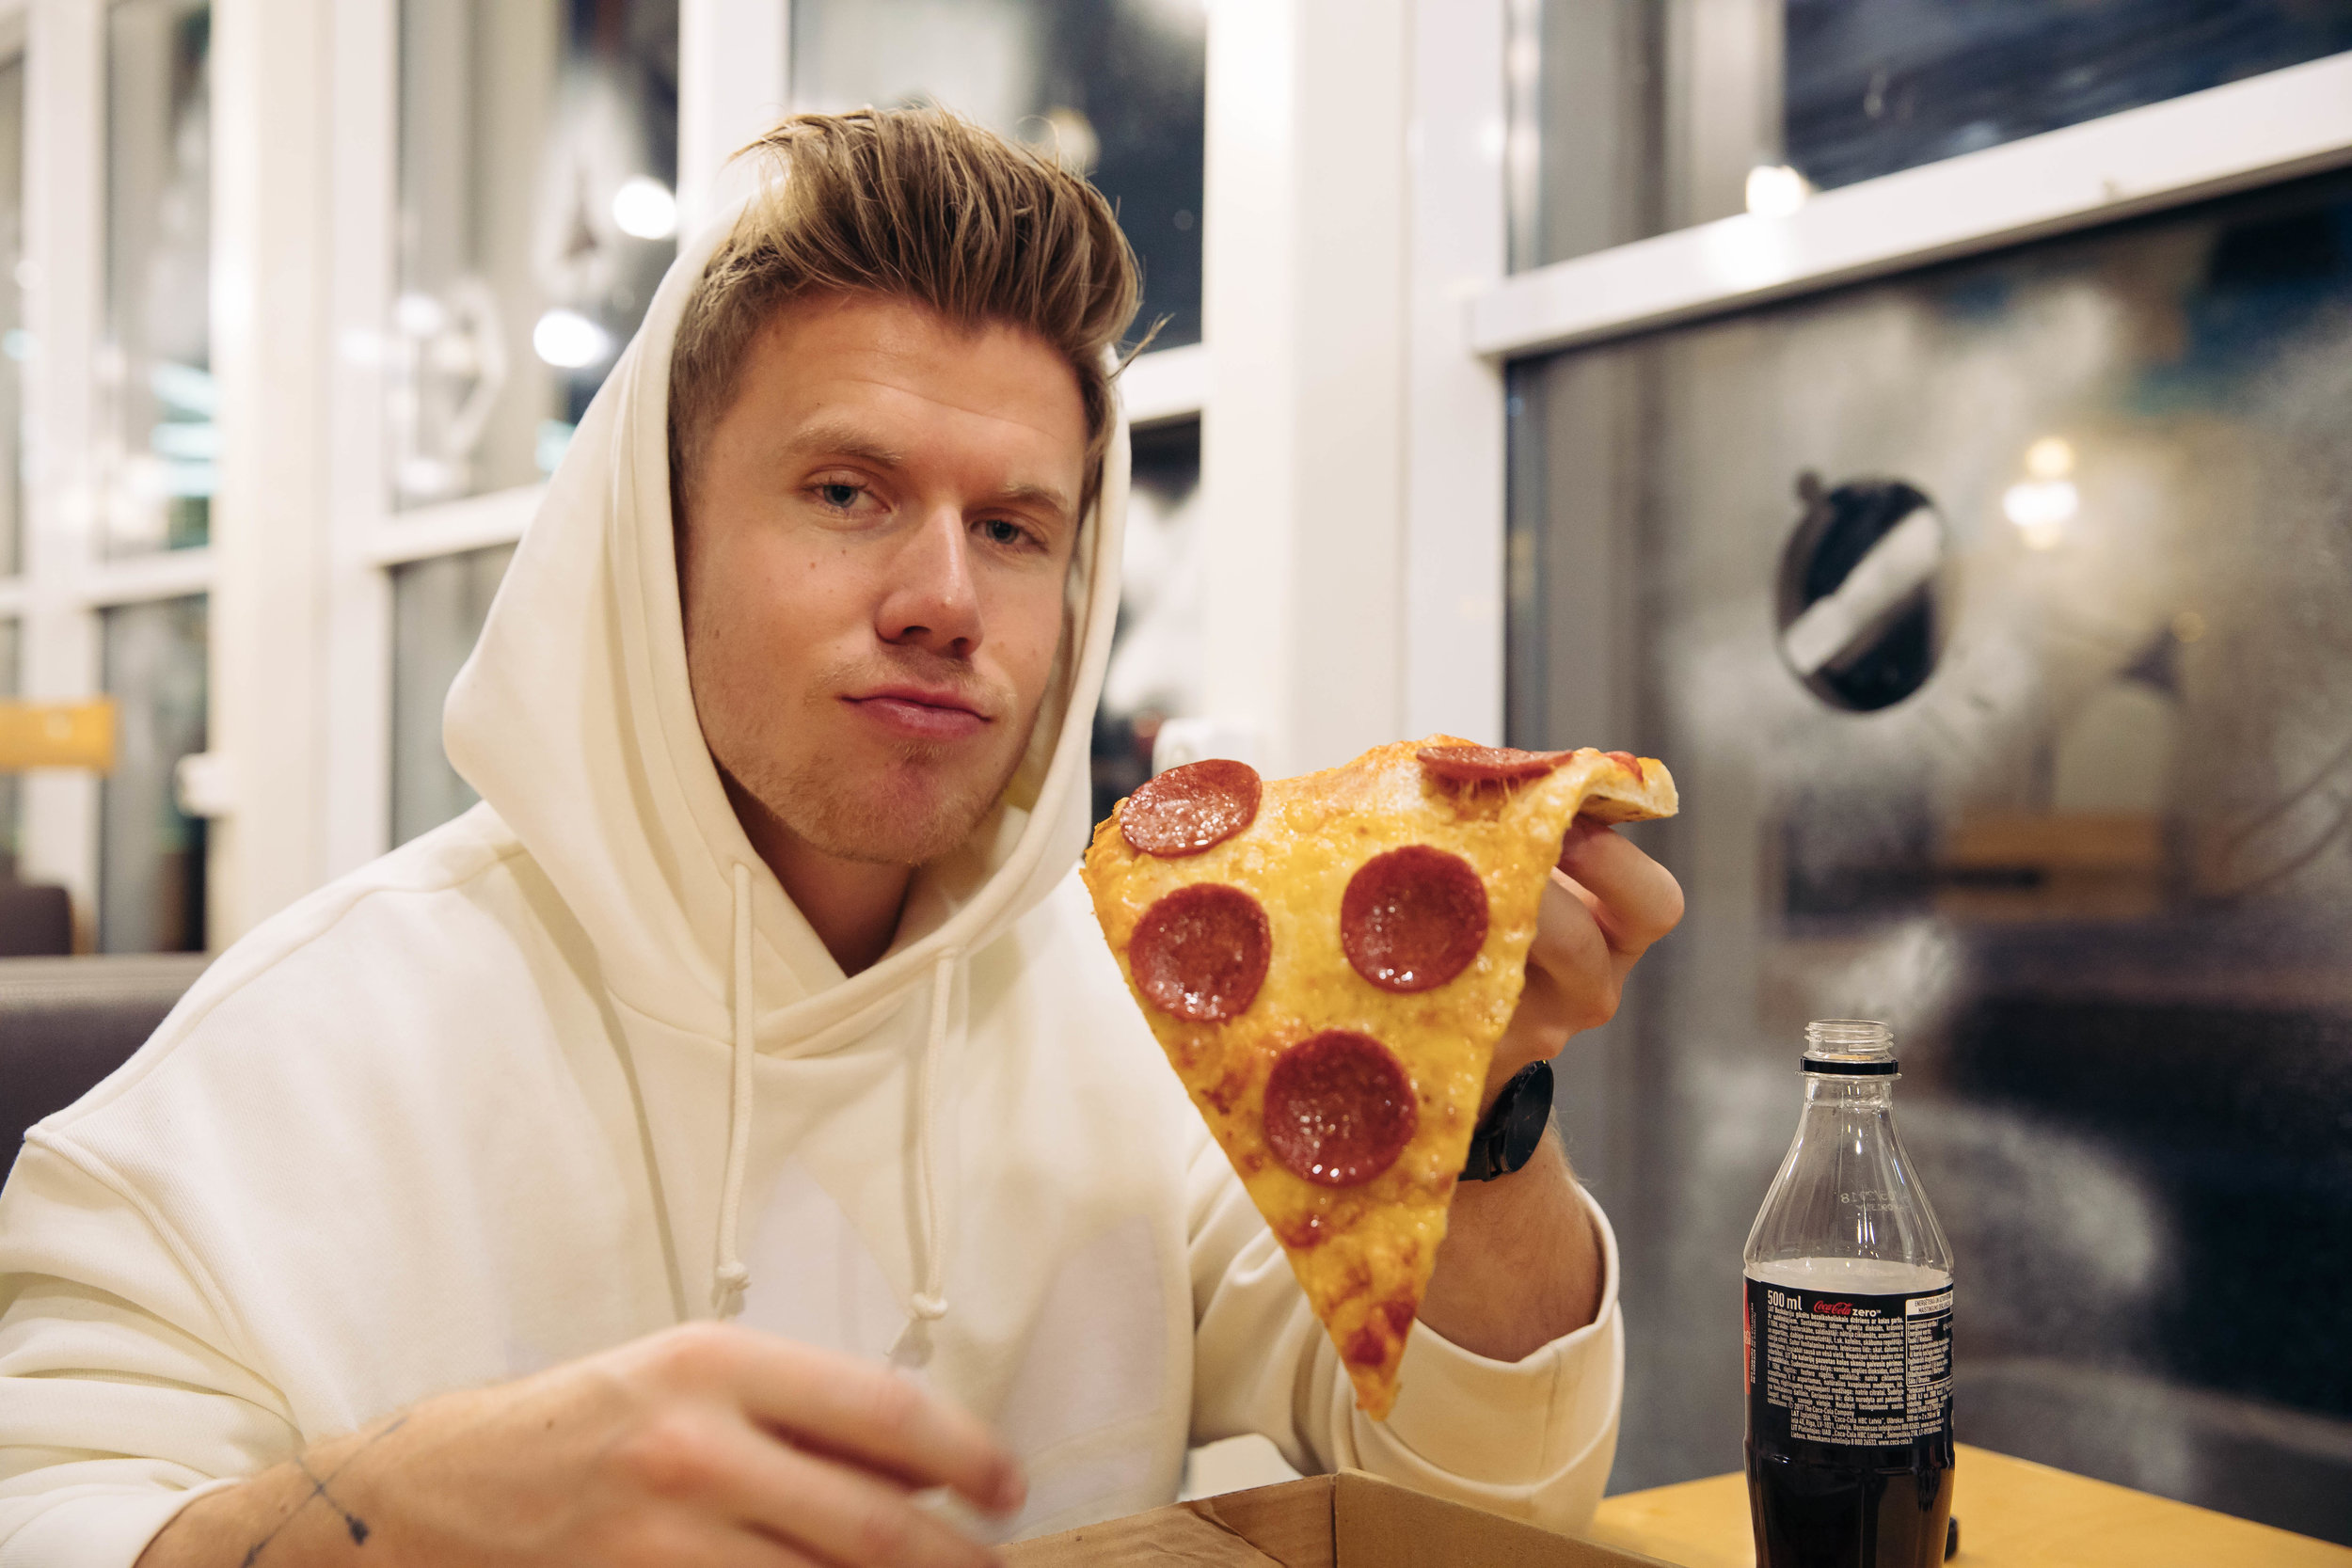 Kim Sørensen eating pizza at a restaurant in Riga.